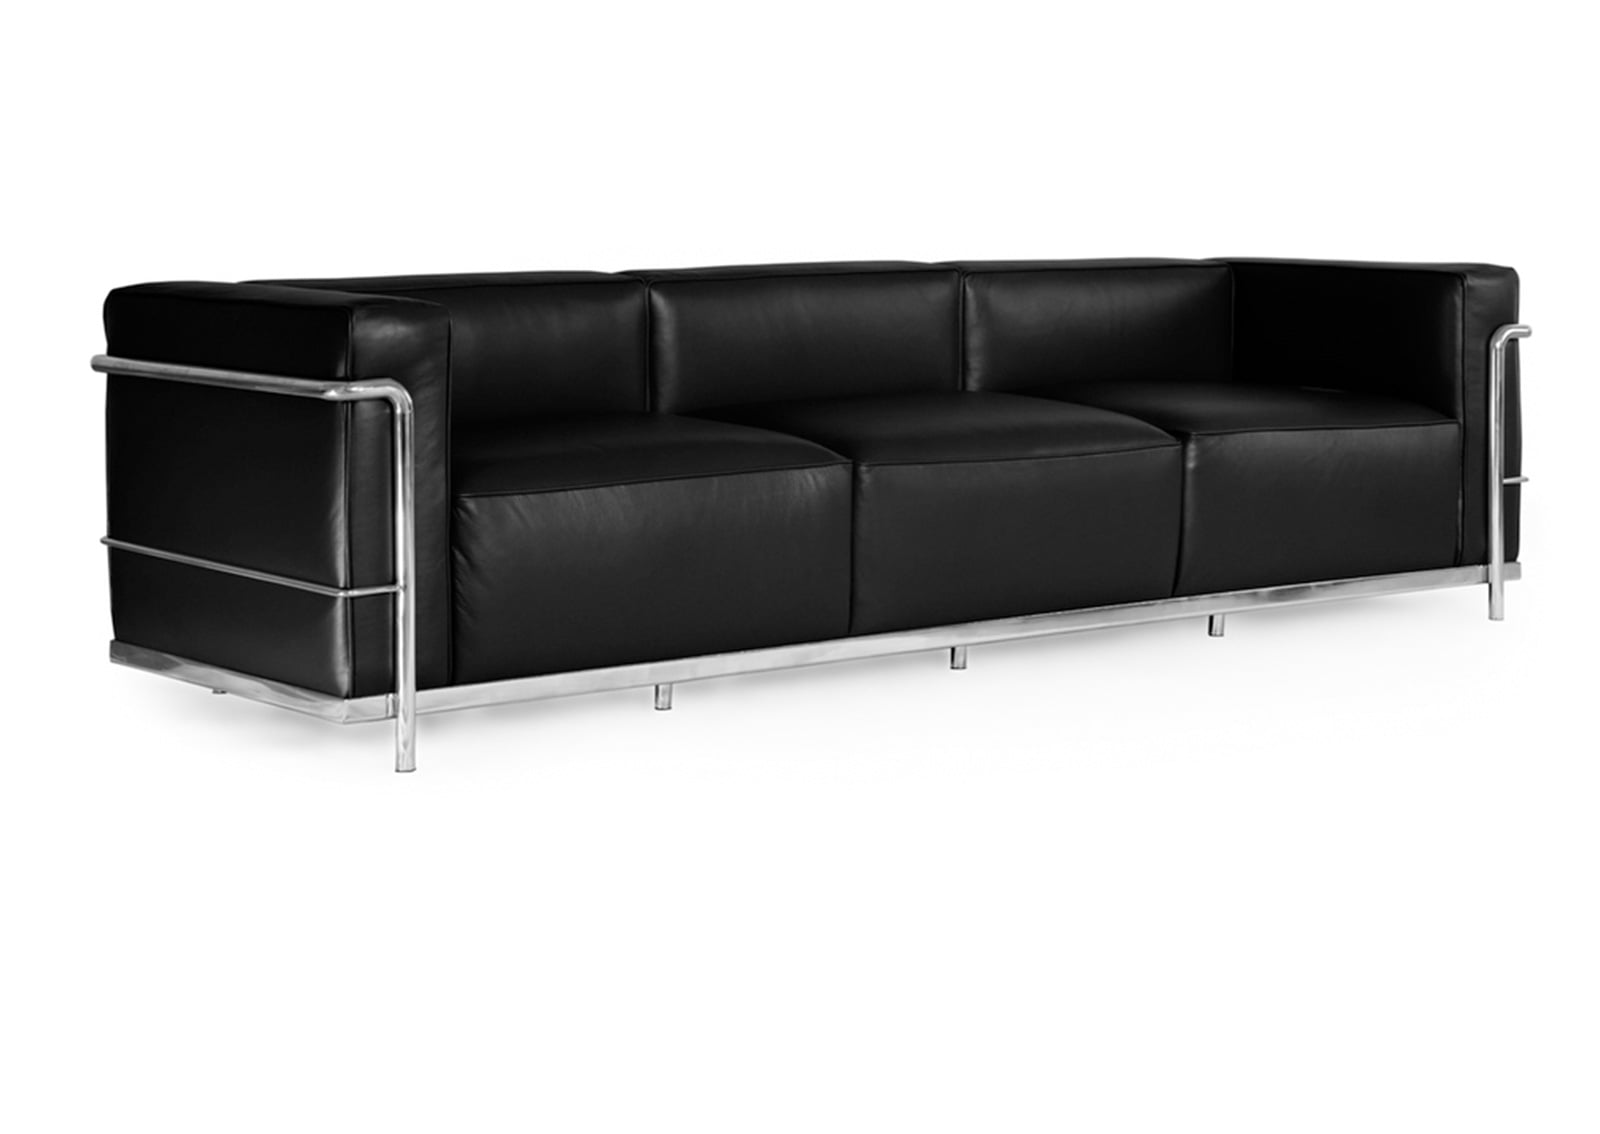 le corbusier sofa replica knightsbridge tufted scroll arm chesterfield by signal hills reproduction lc3 furnishplus